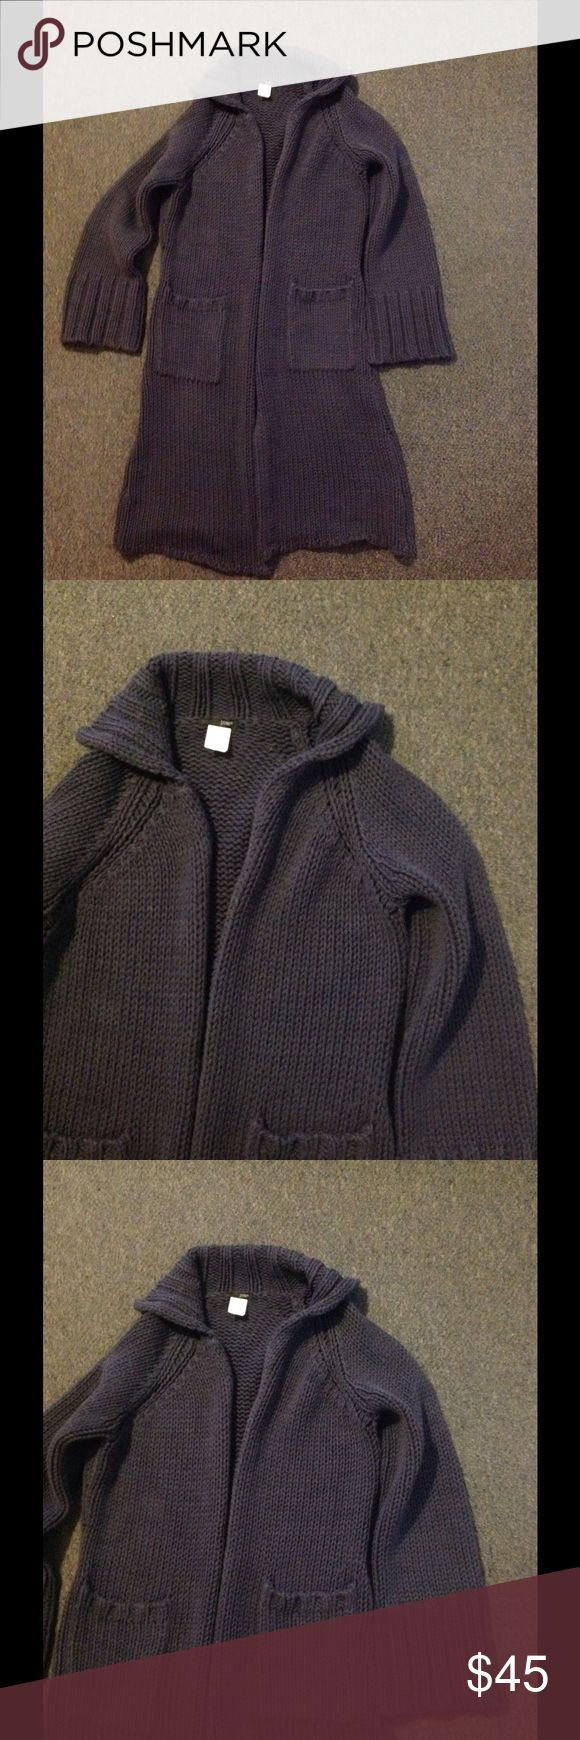 J. Crew Long Hangs Open Cardigan Sweater S Very nice J. Crew sweater. Long chunky style - hangs open with pockets. Sleeves are wide at the bottom. Made of cotton/acrylic in size Small. Great condition. J. Crew Sweaters